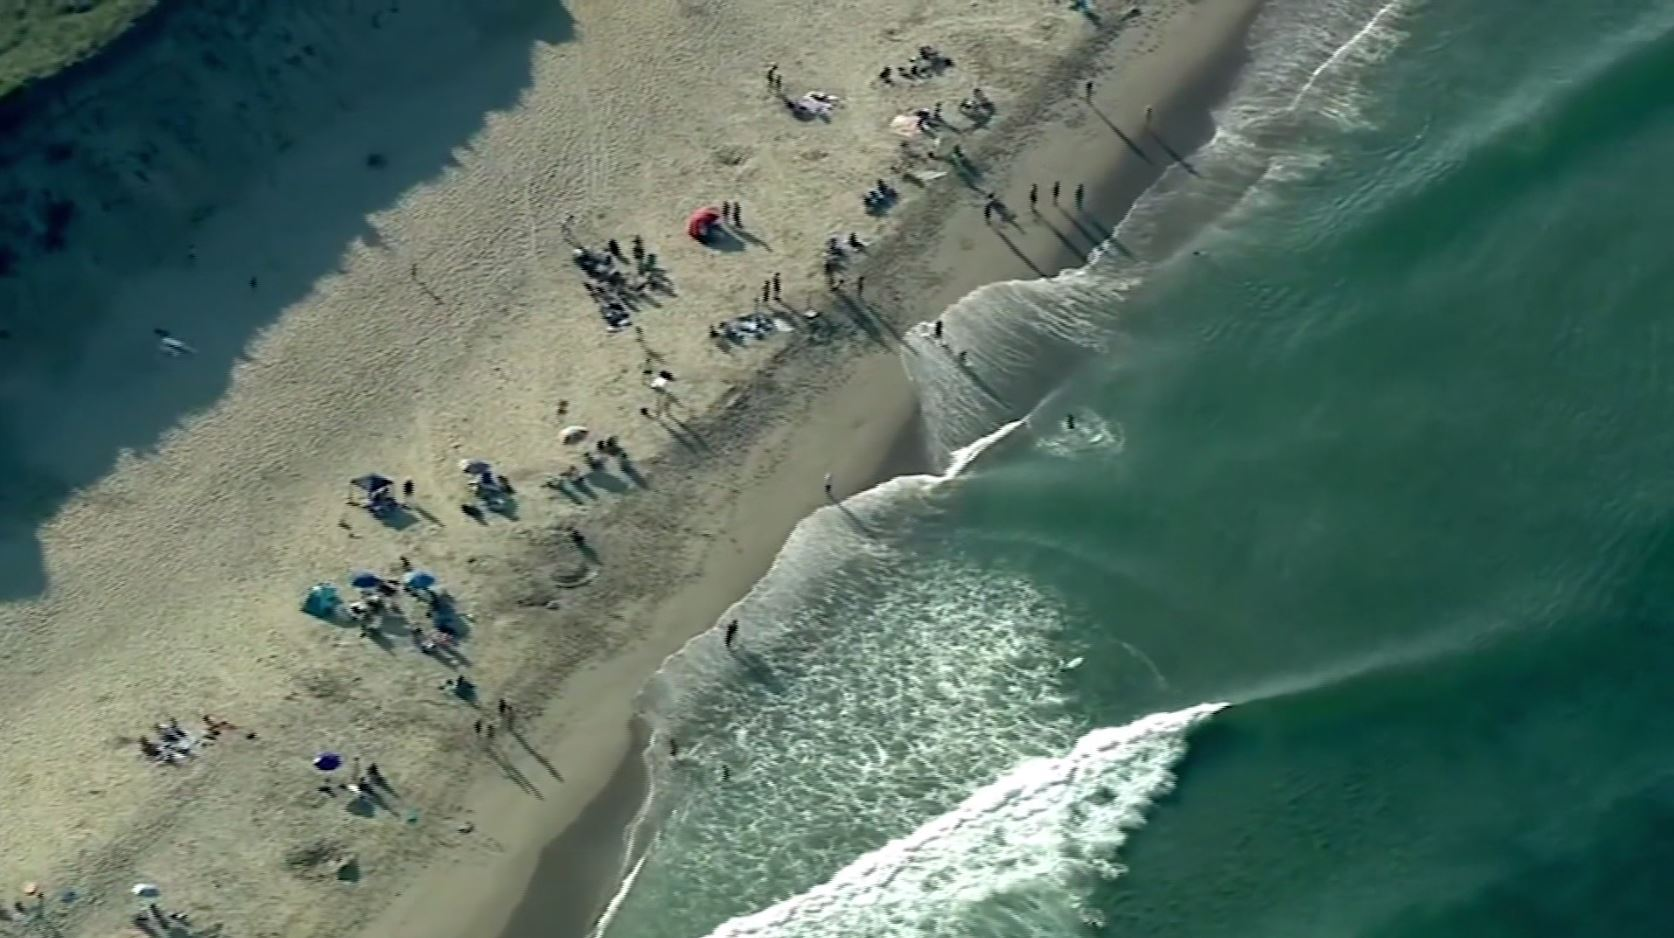 Beach closed after shark spotted eating a seal   WPRI com